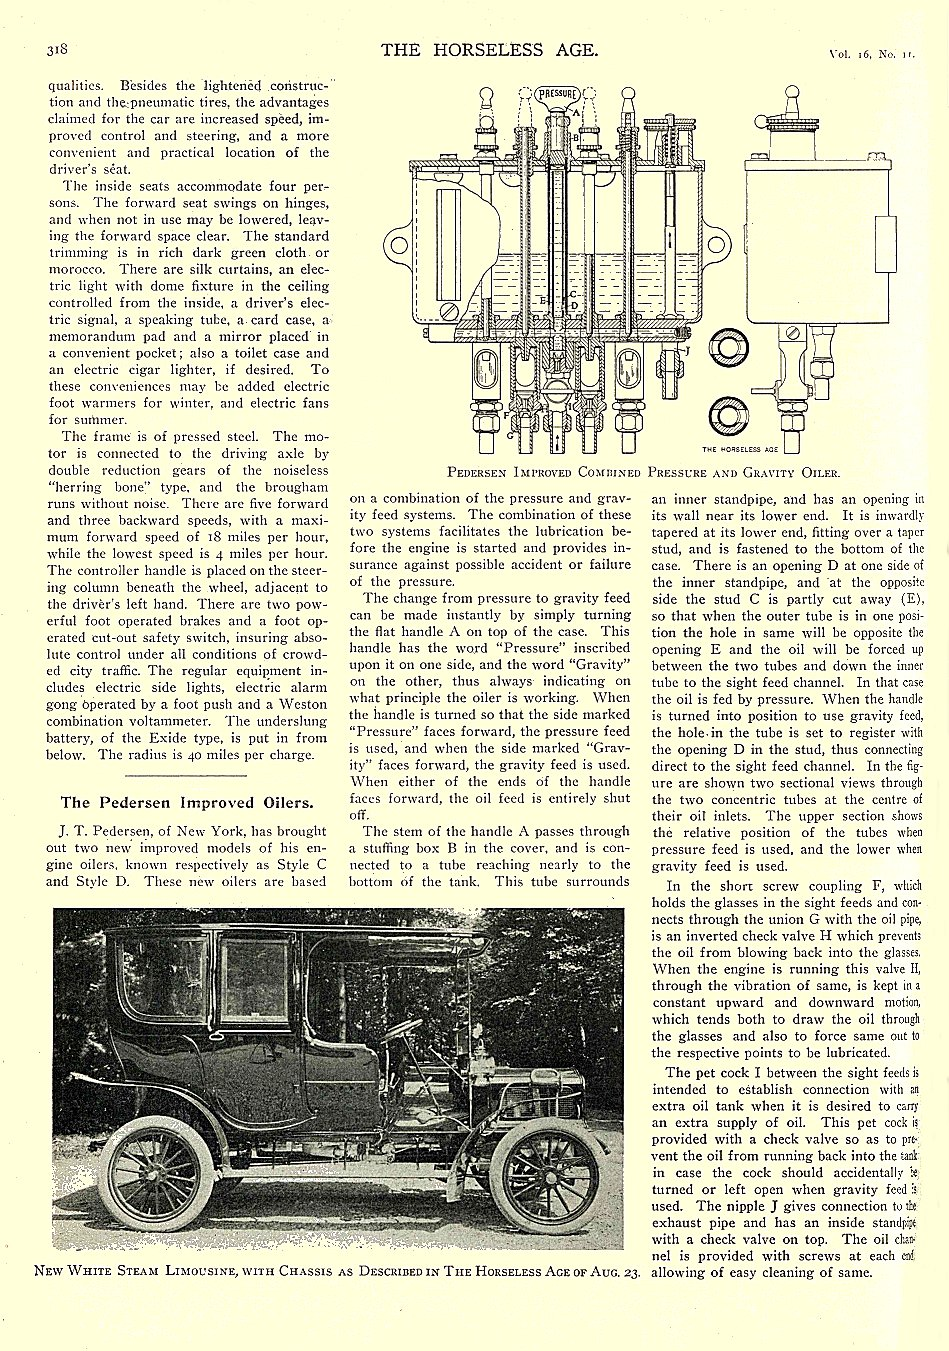 1905 9 13 COLUMBIA Electric New Columbia Electric Brougham — Mark LXV!!! THE HORSELESS AGE September 13, 1905 University of Minnesota Library 8.5″x11.5″ page 318